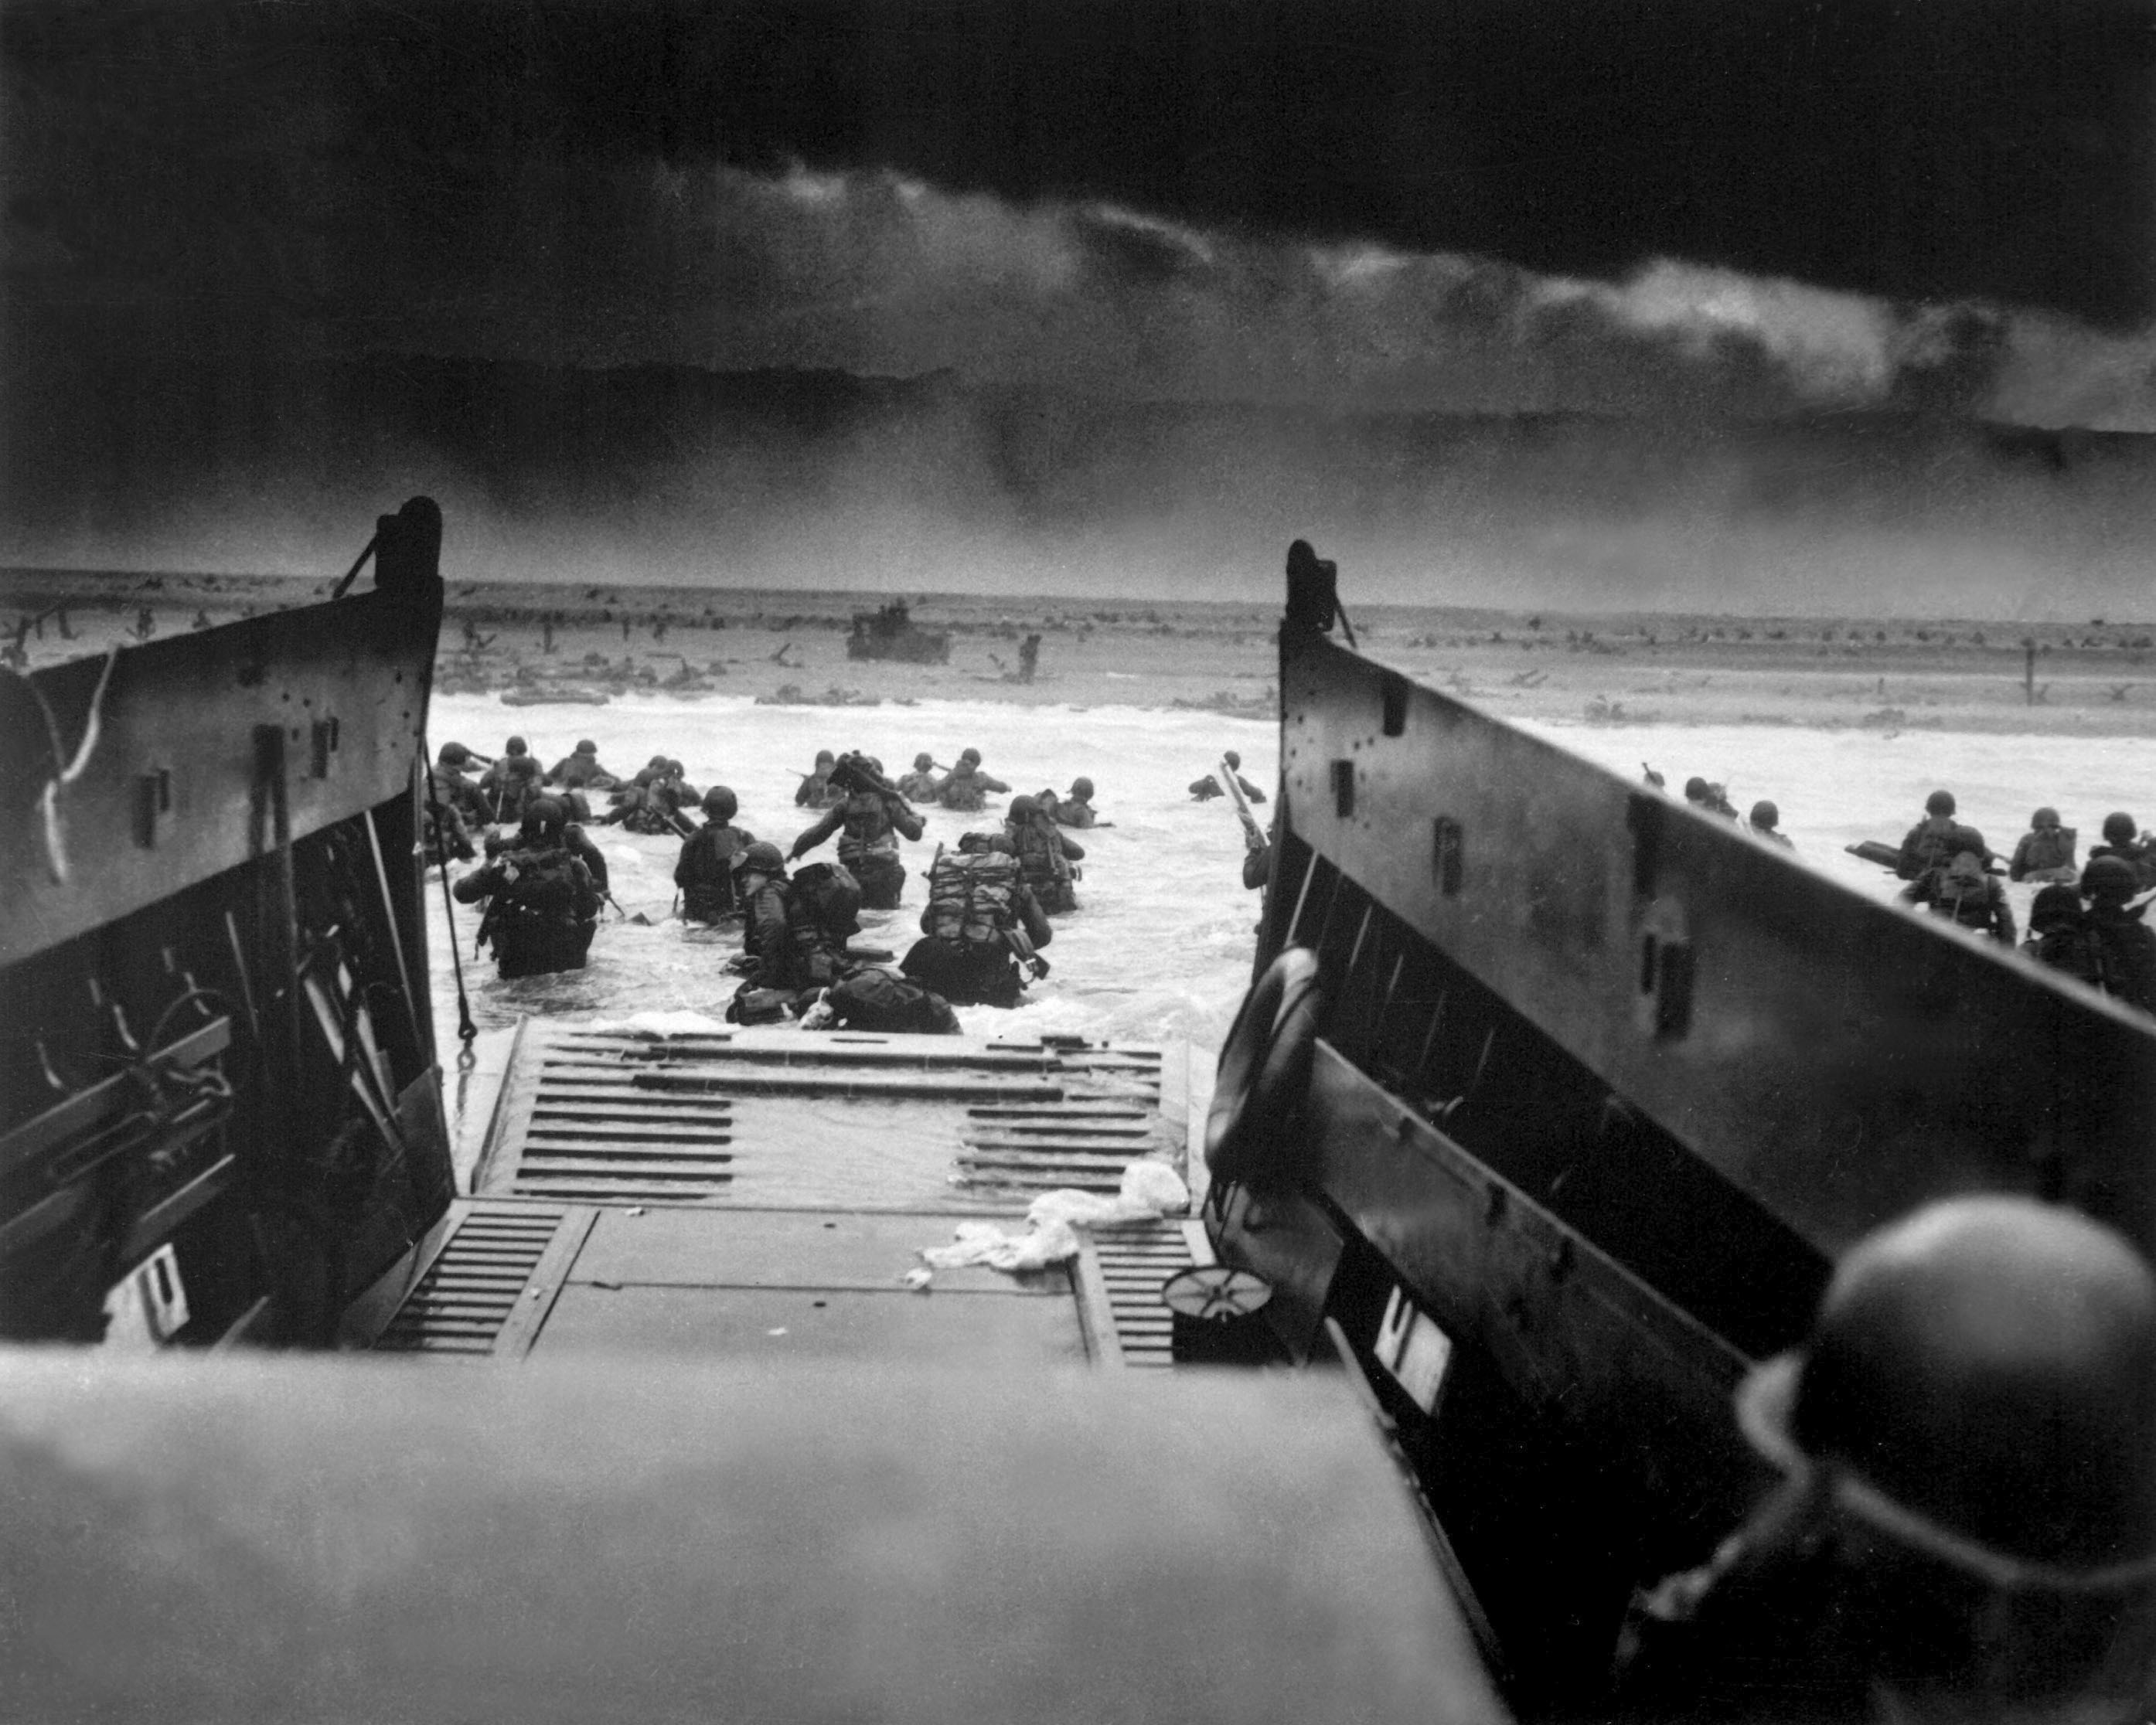 A view on June 6, 1944, from a coast Guard Barge hitting the French coast with the first waves of invaders.  U.S. troops wade ashore  under heavy machine gun fire  from Nazi beach nests.